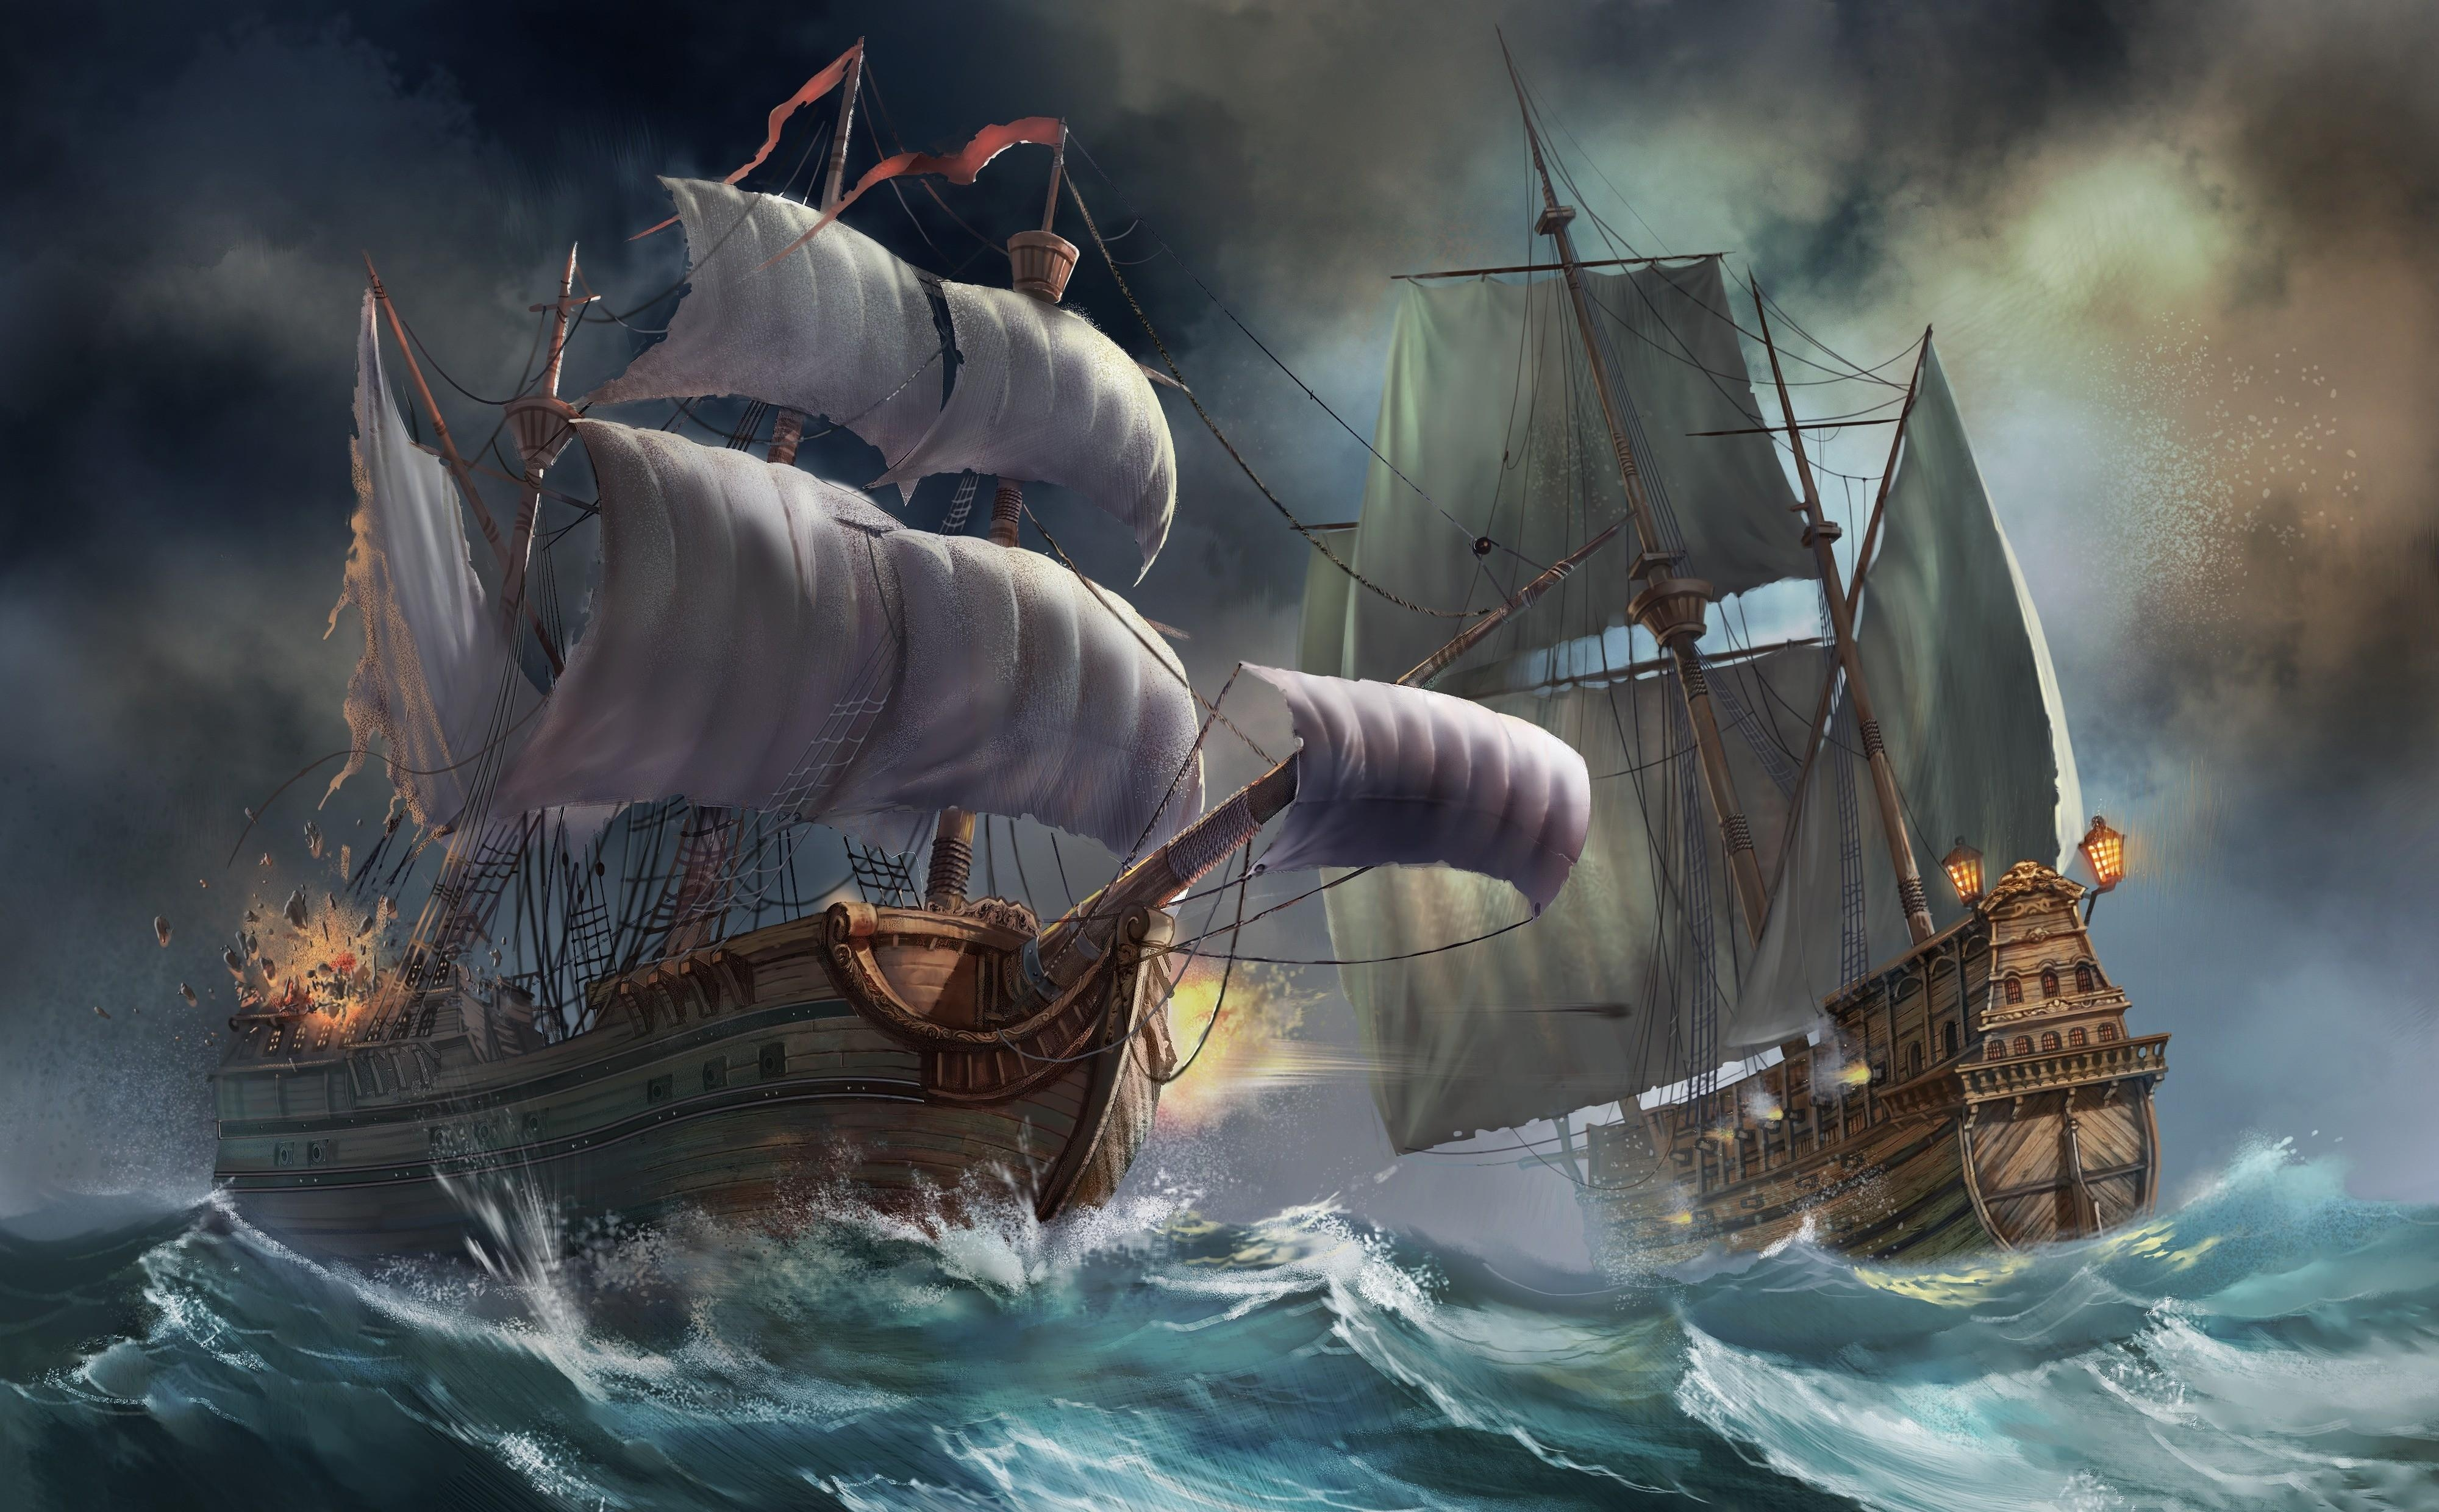 148421 download wallpaper Fantasy, Ships, Sea, Storm, Explosion screensavers and pictures for free